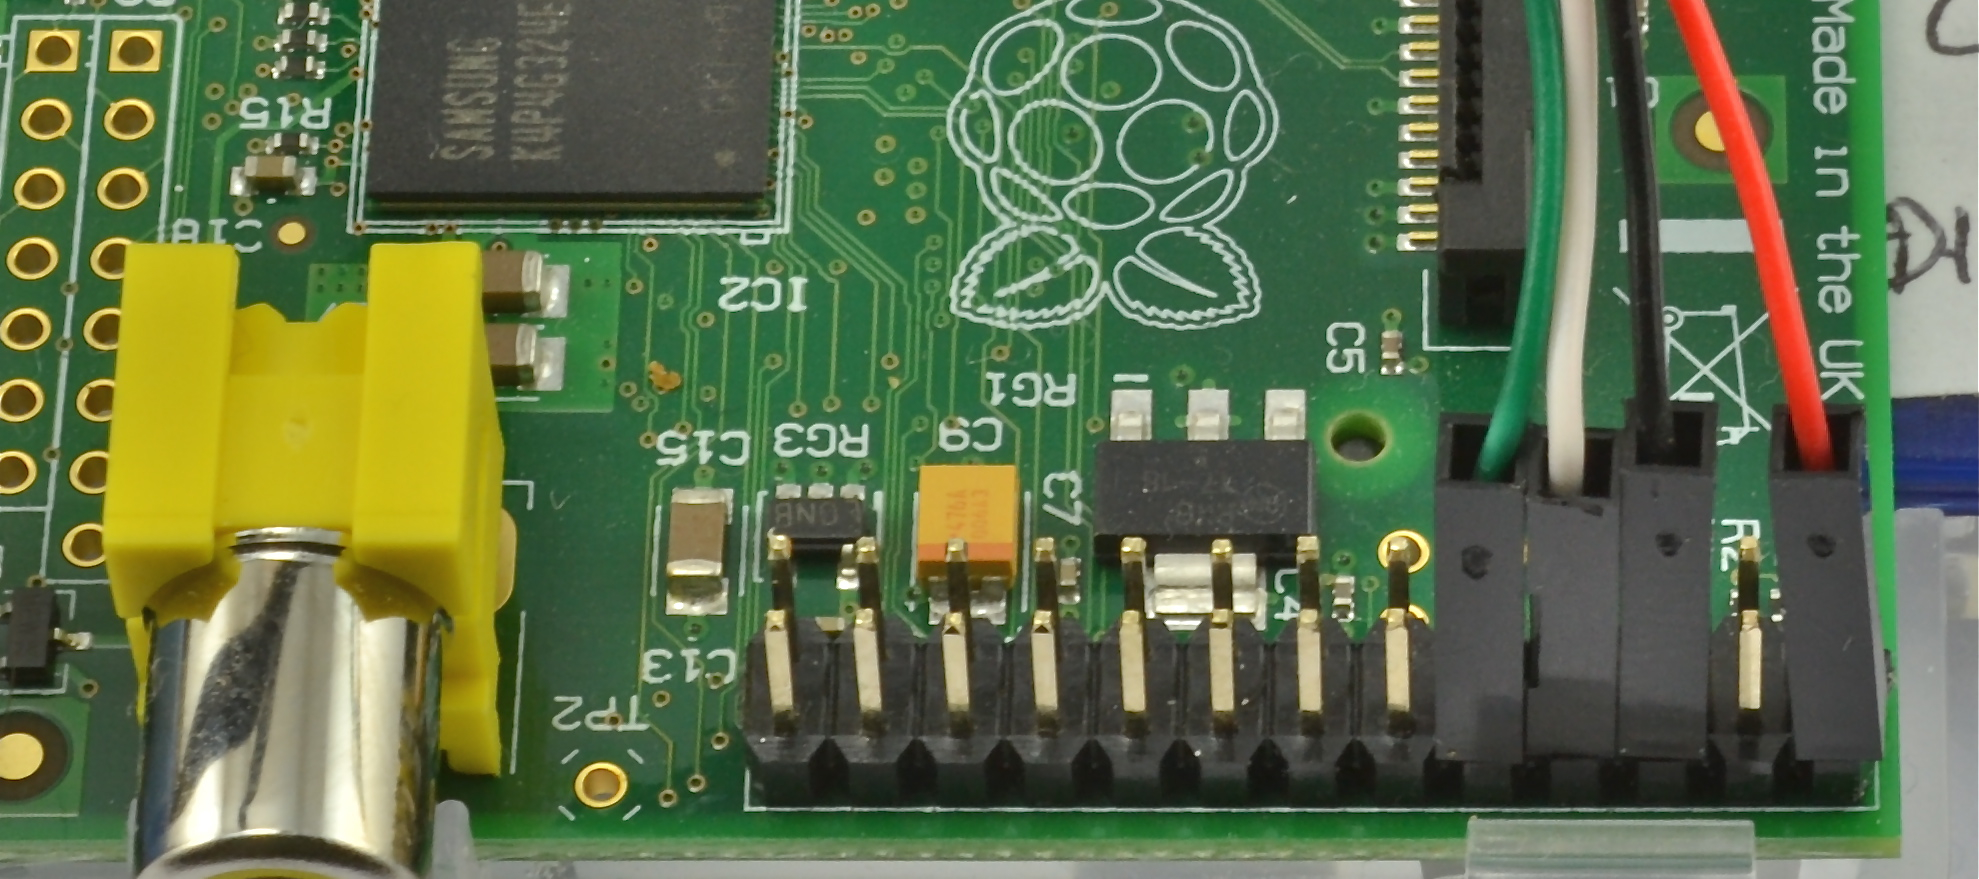 learn_raspberry_pi_gpio_closeup.jpg